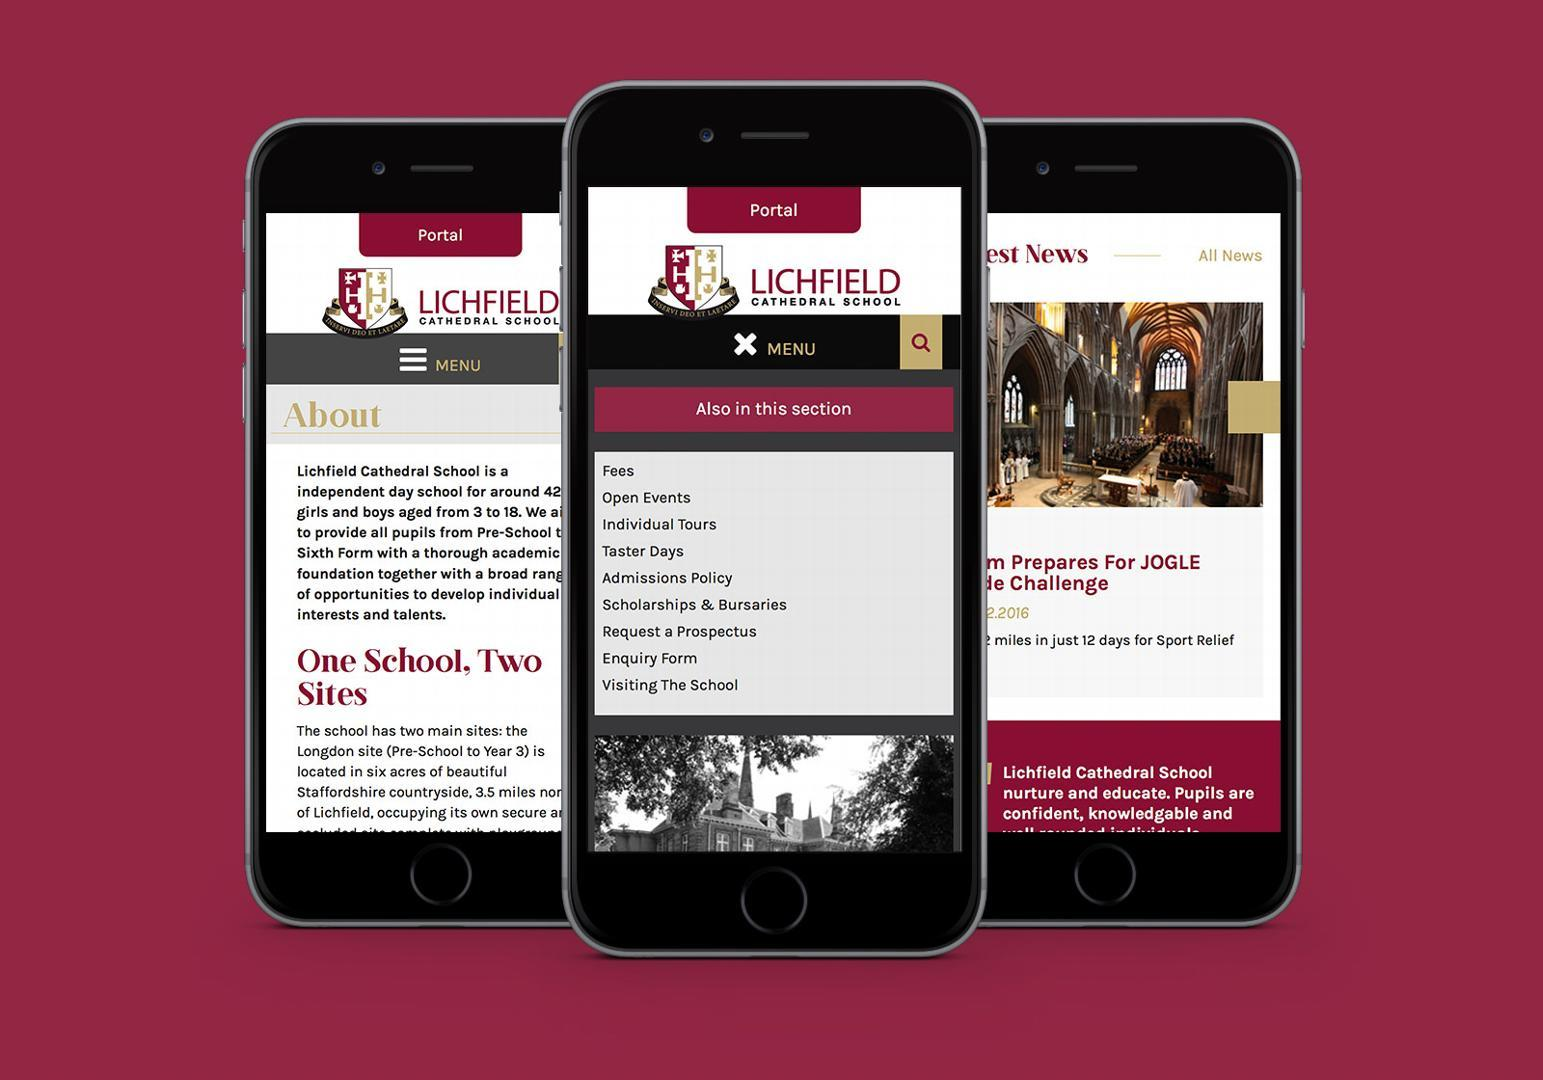 School website for Lichfield Cathedral School